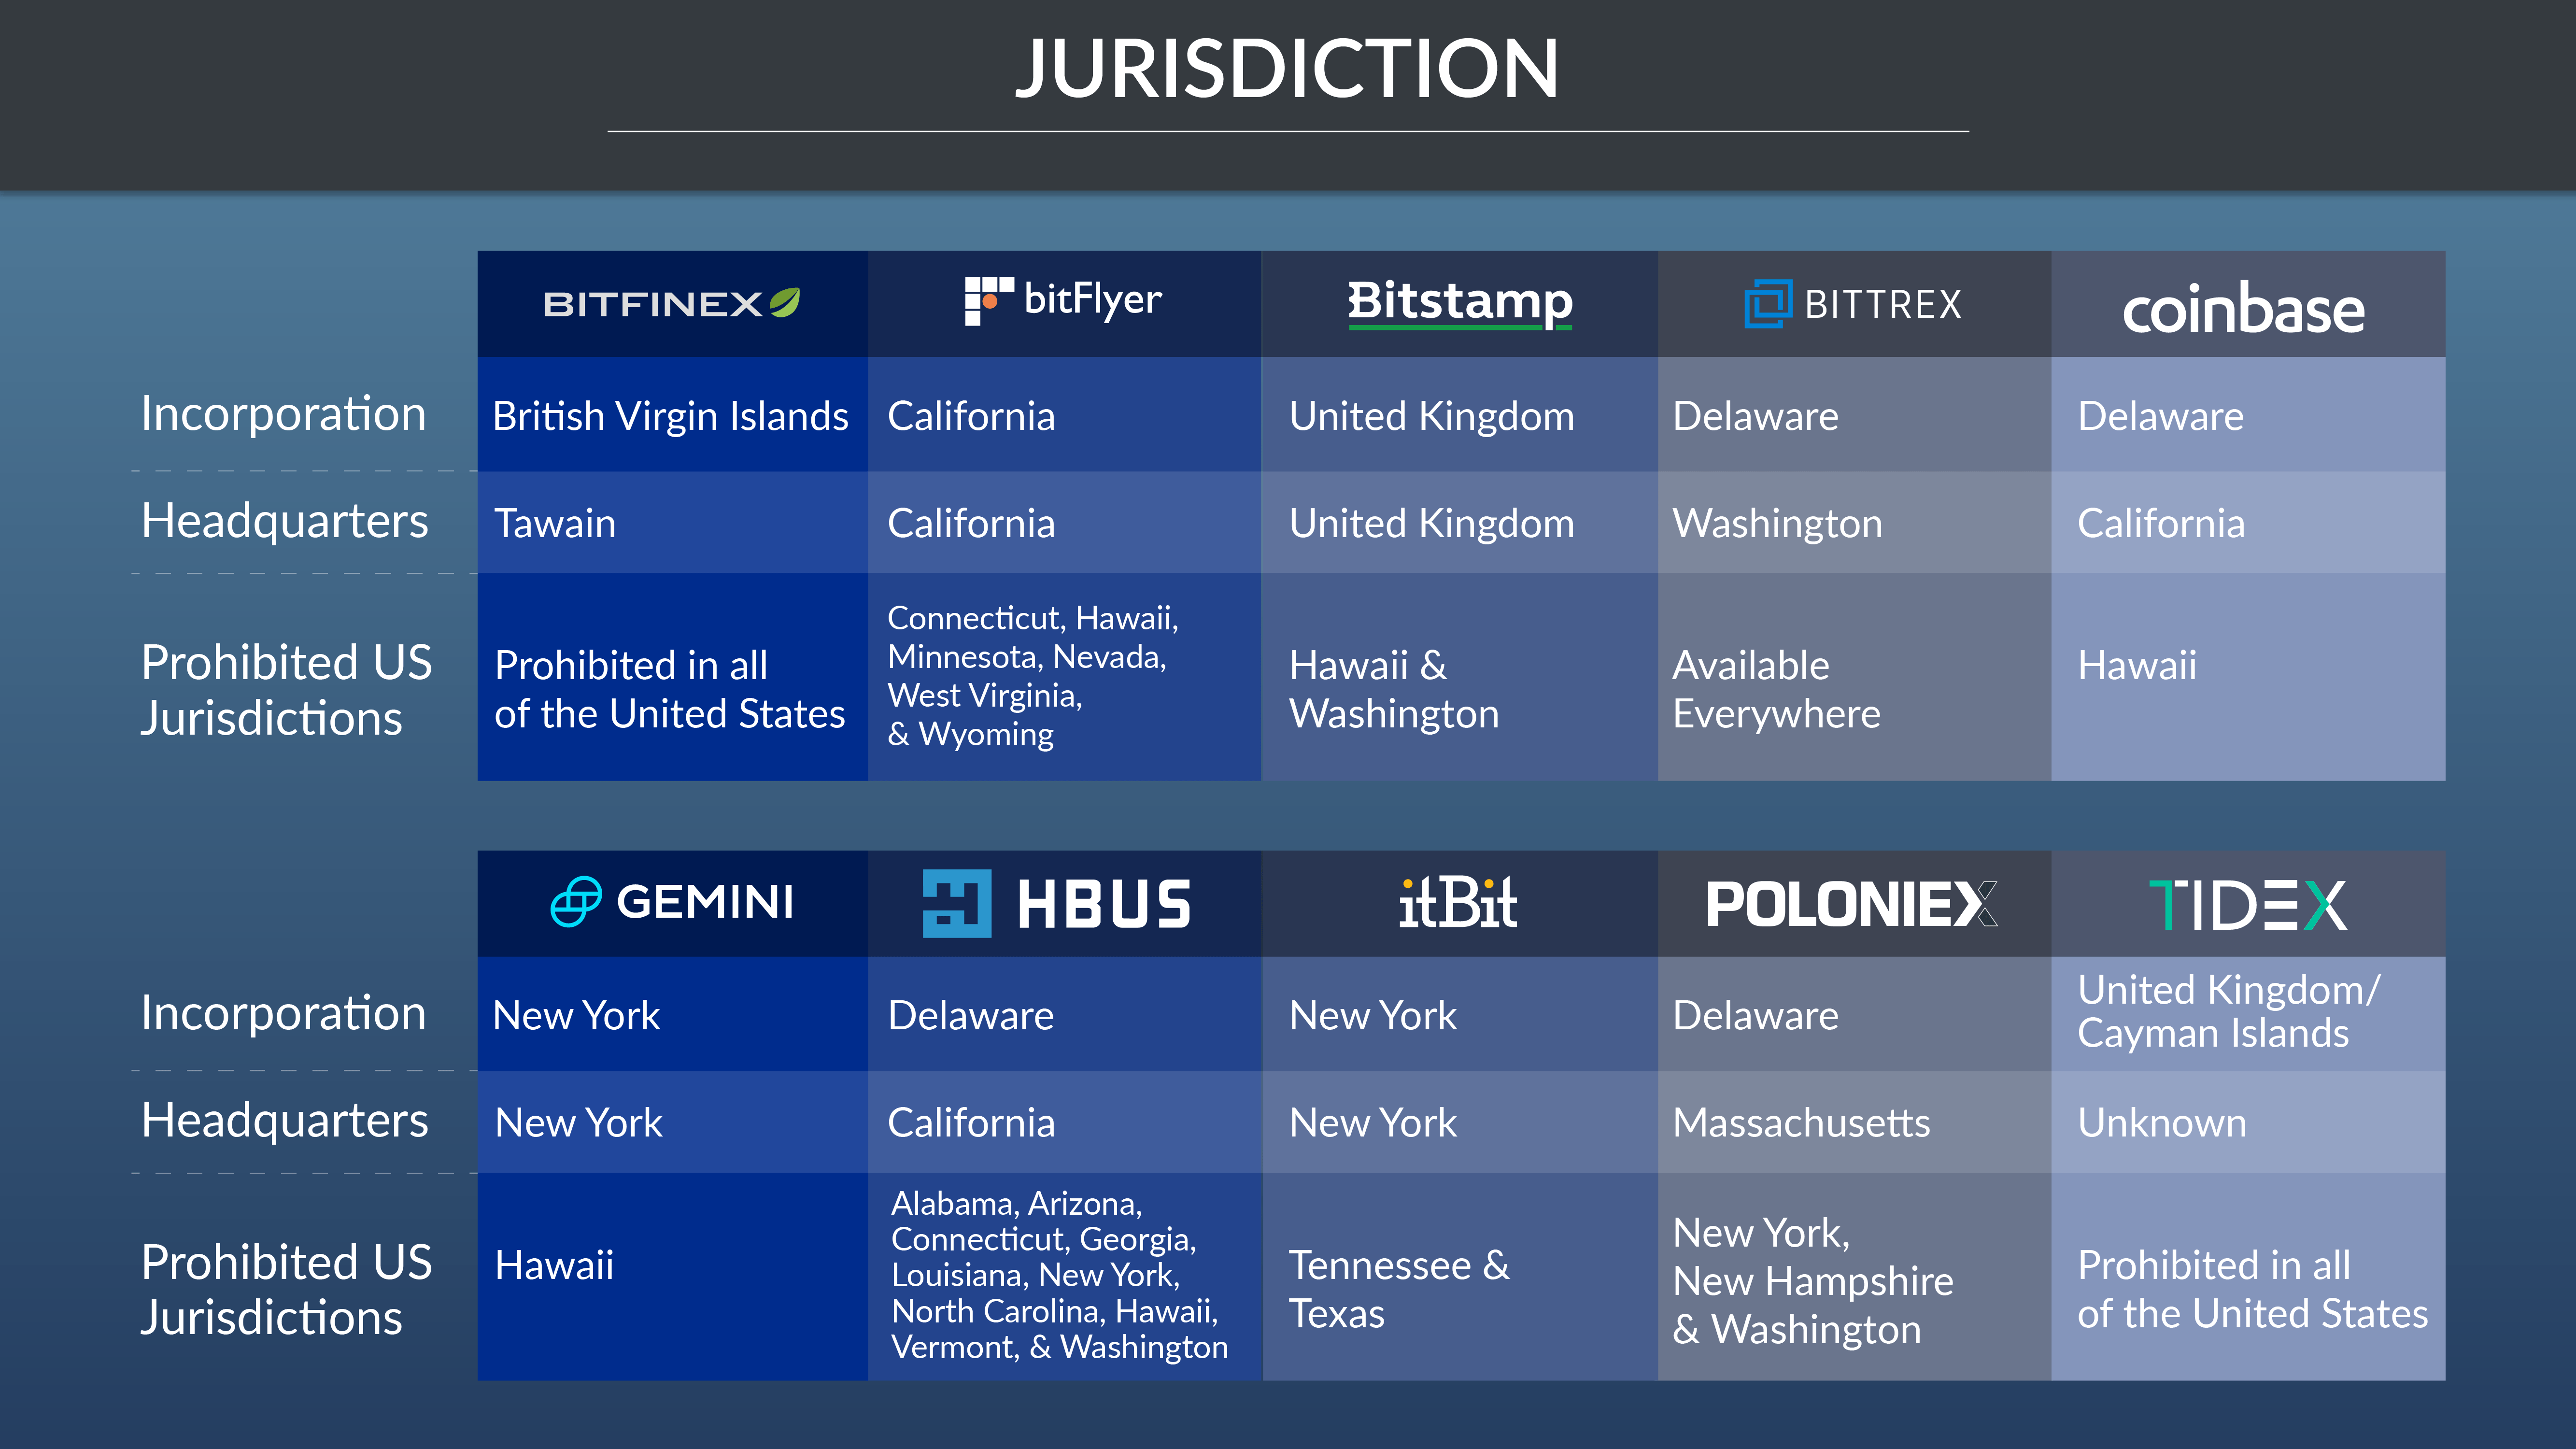 Jurisdictions list